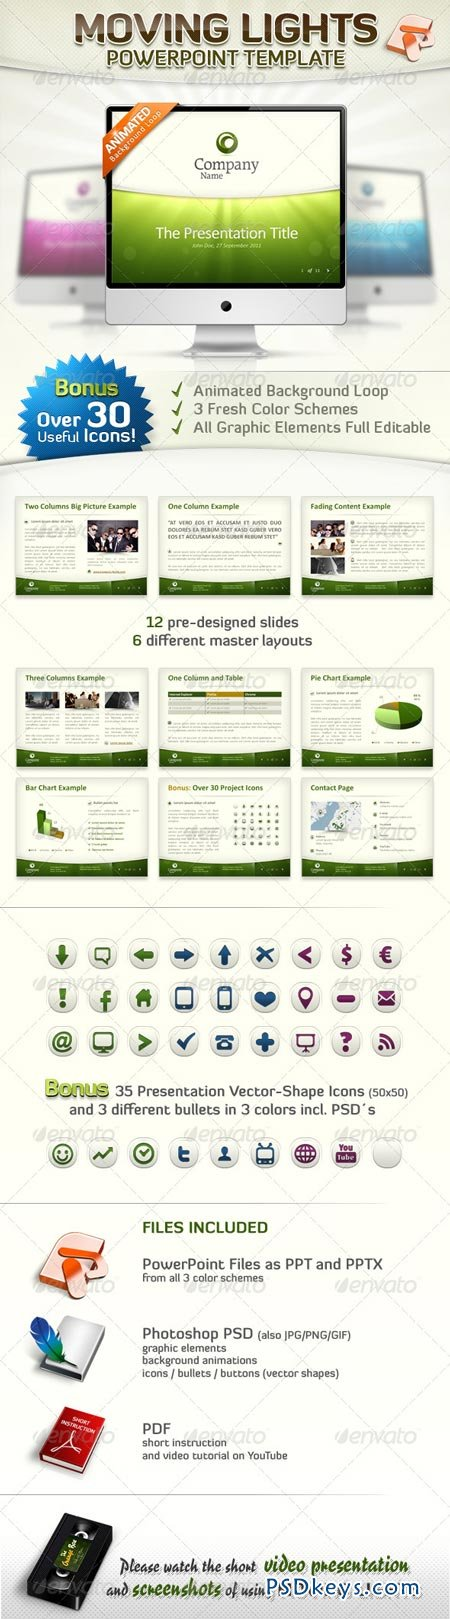 Moving Lights – PowerPoint Template 241010